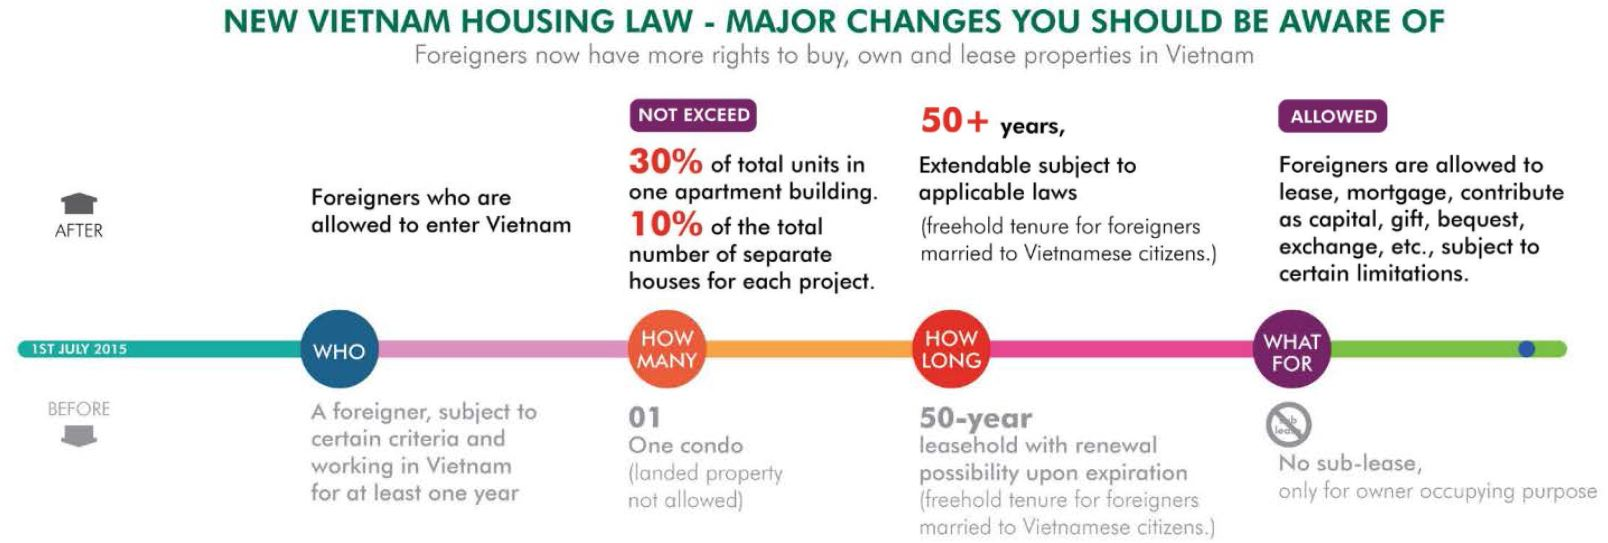 New housing law and property business law for vietnam - property and construction - vietnam Using these updates